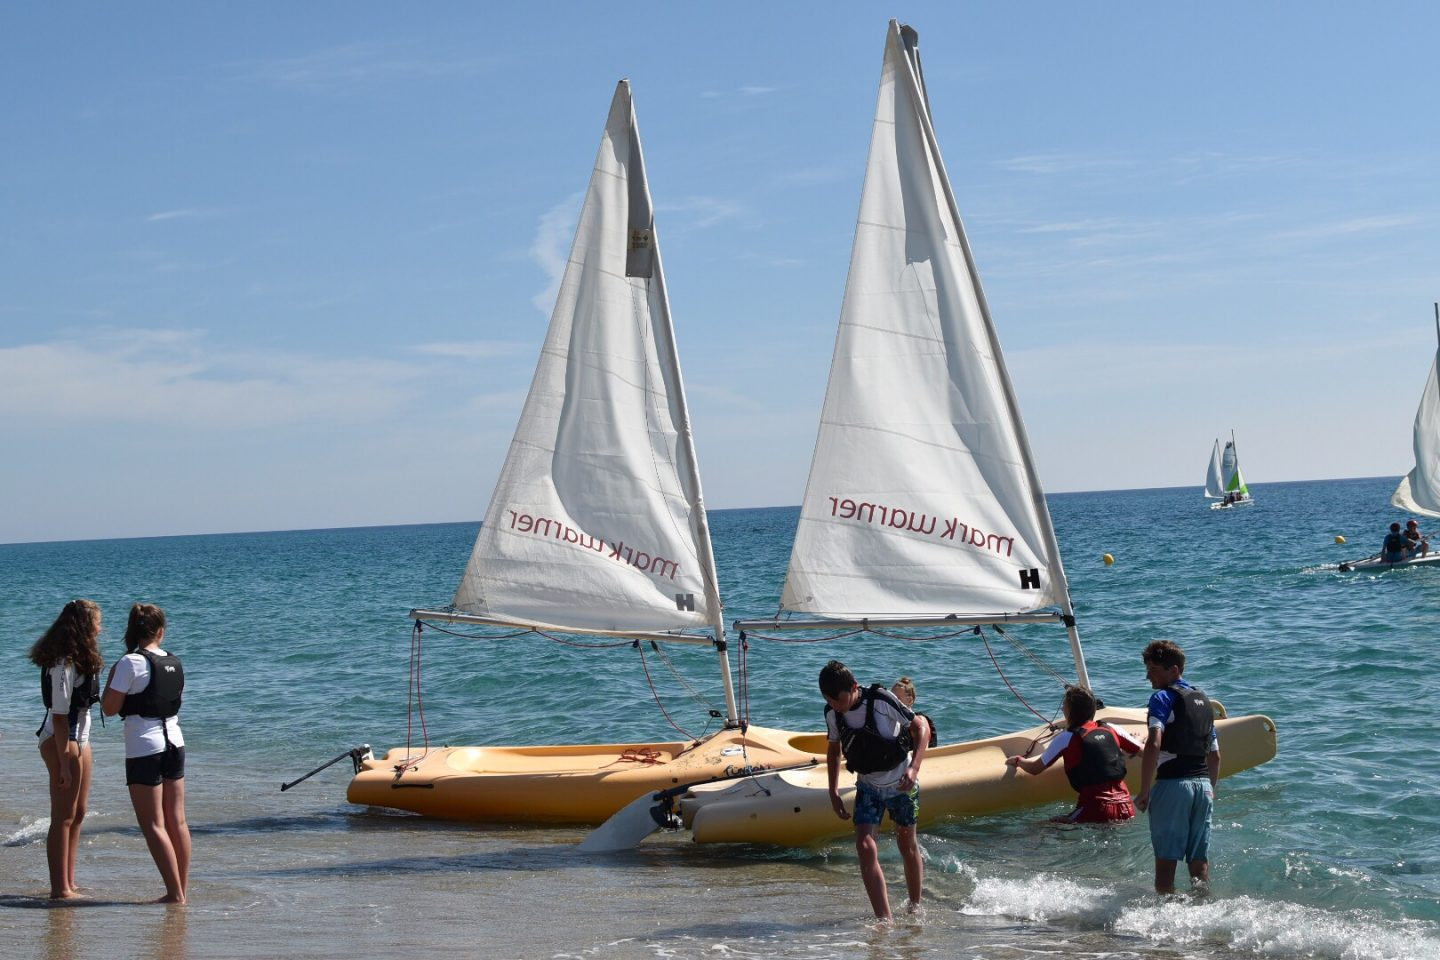 water sports at pedepera